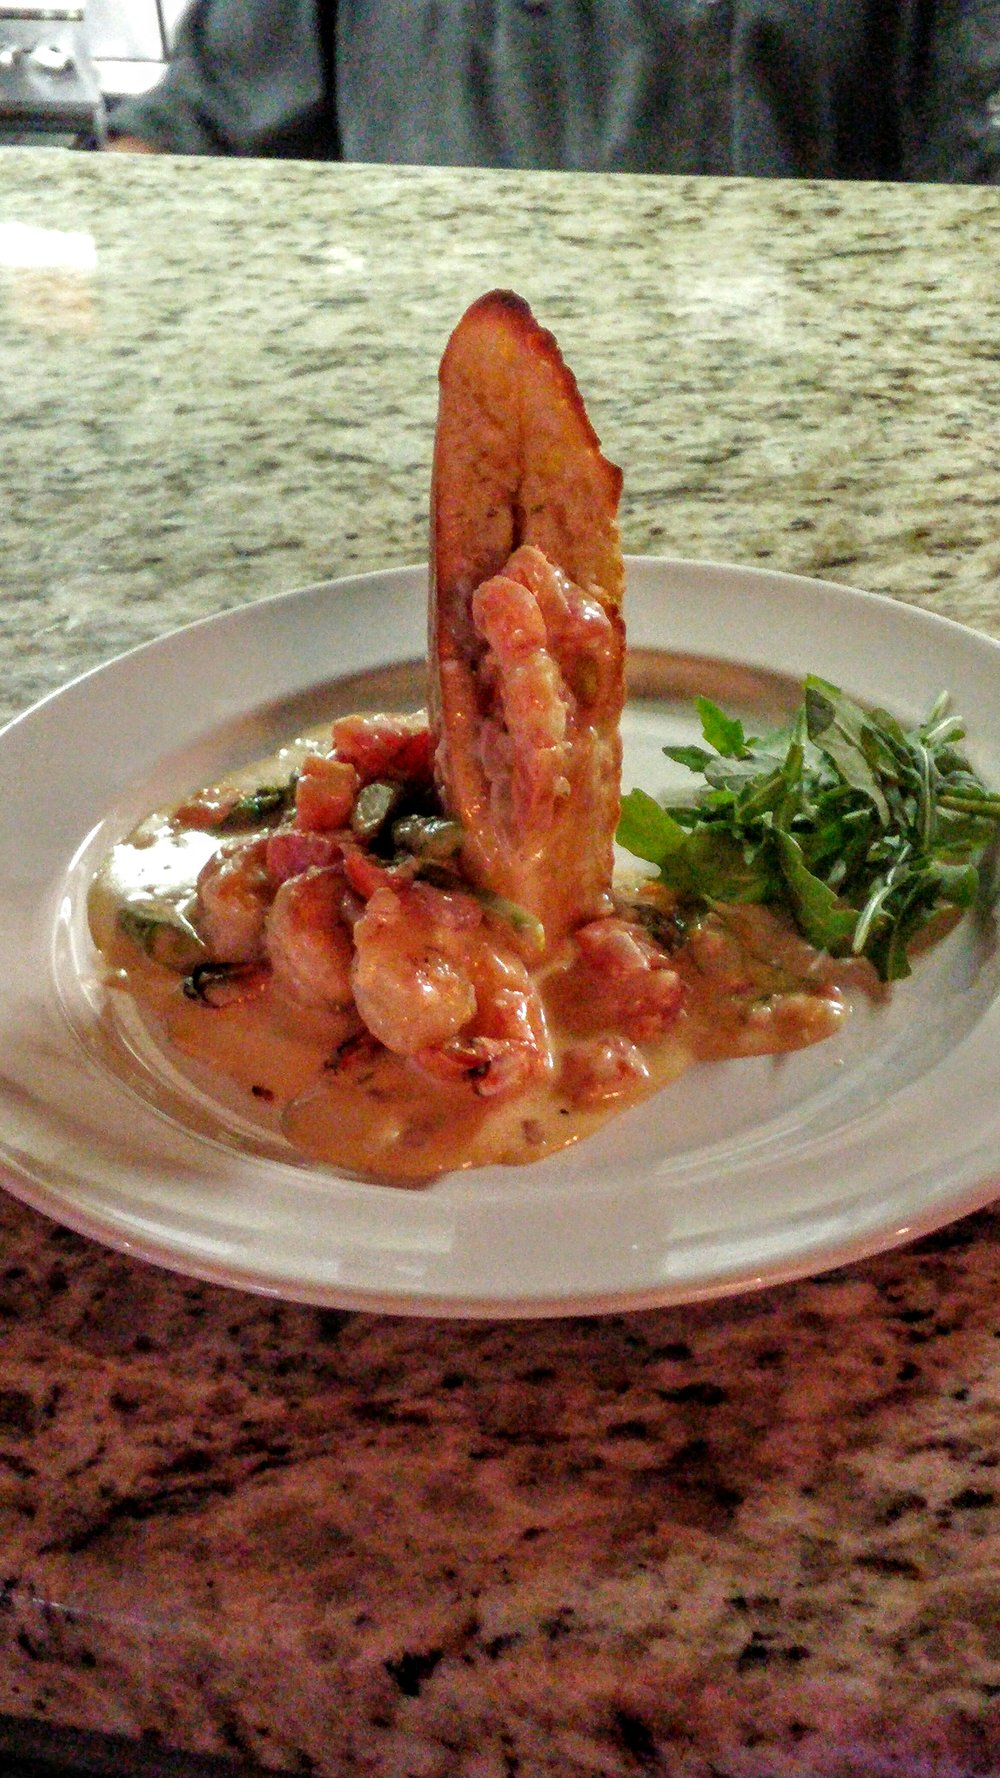 Garlic shrimp apps